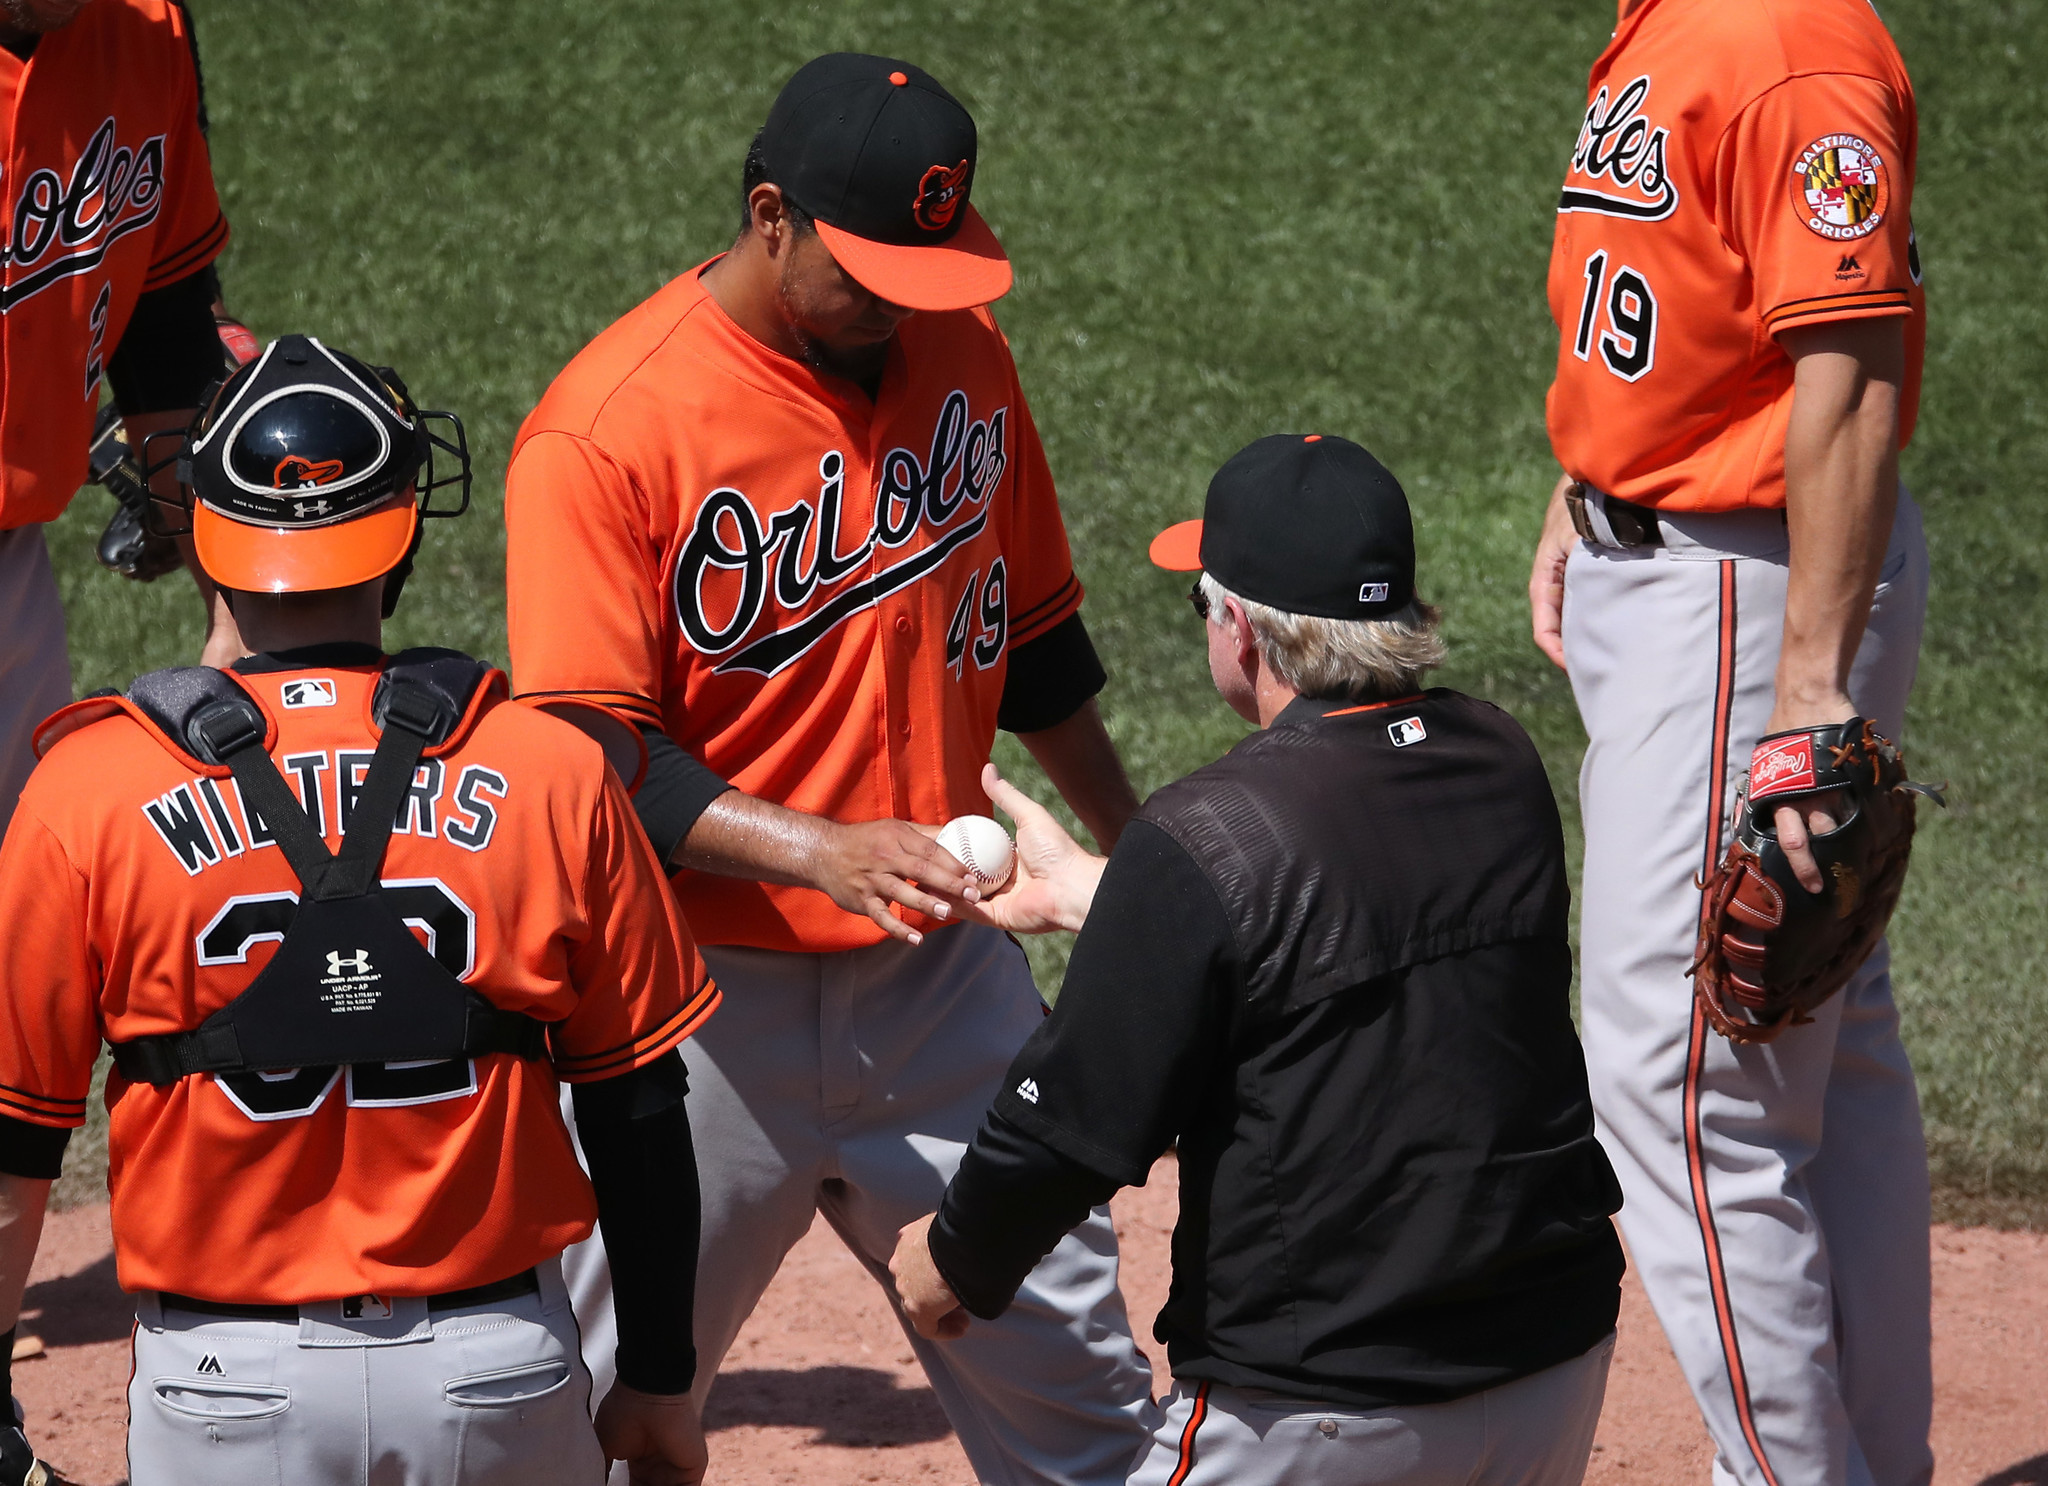 Bal-orioles-pregame-notes-season-could-be-over-for-one-starter-as-final-week-rotation-takes-shape-20160925